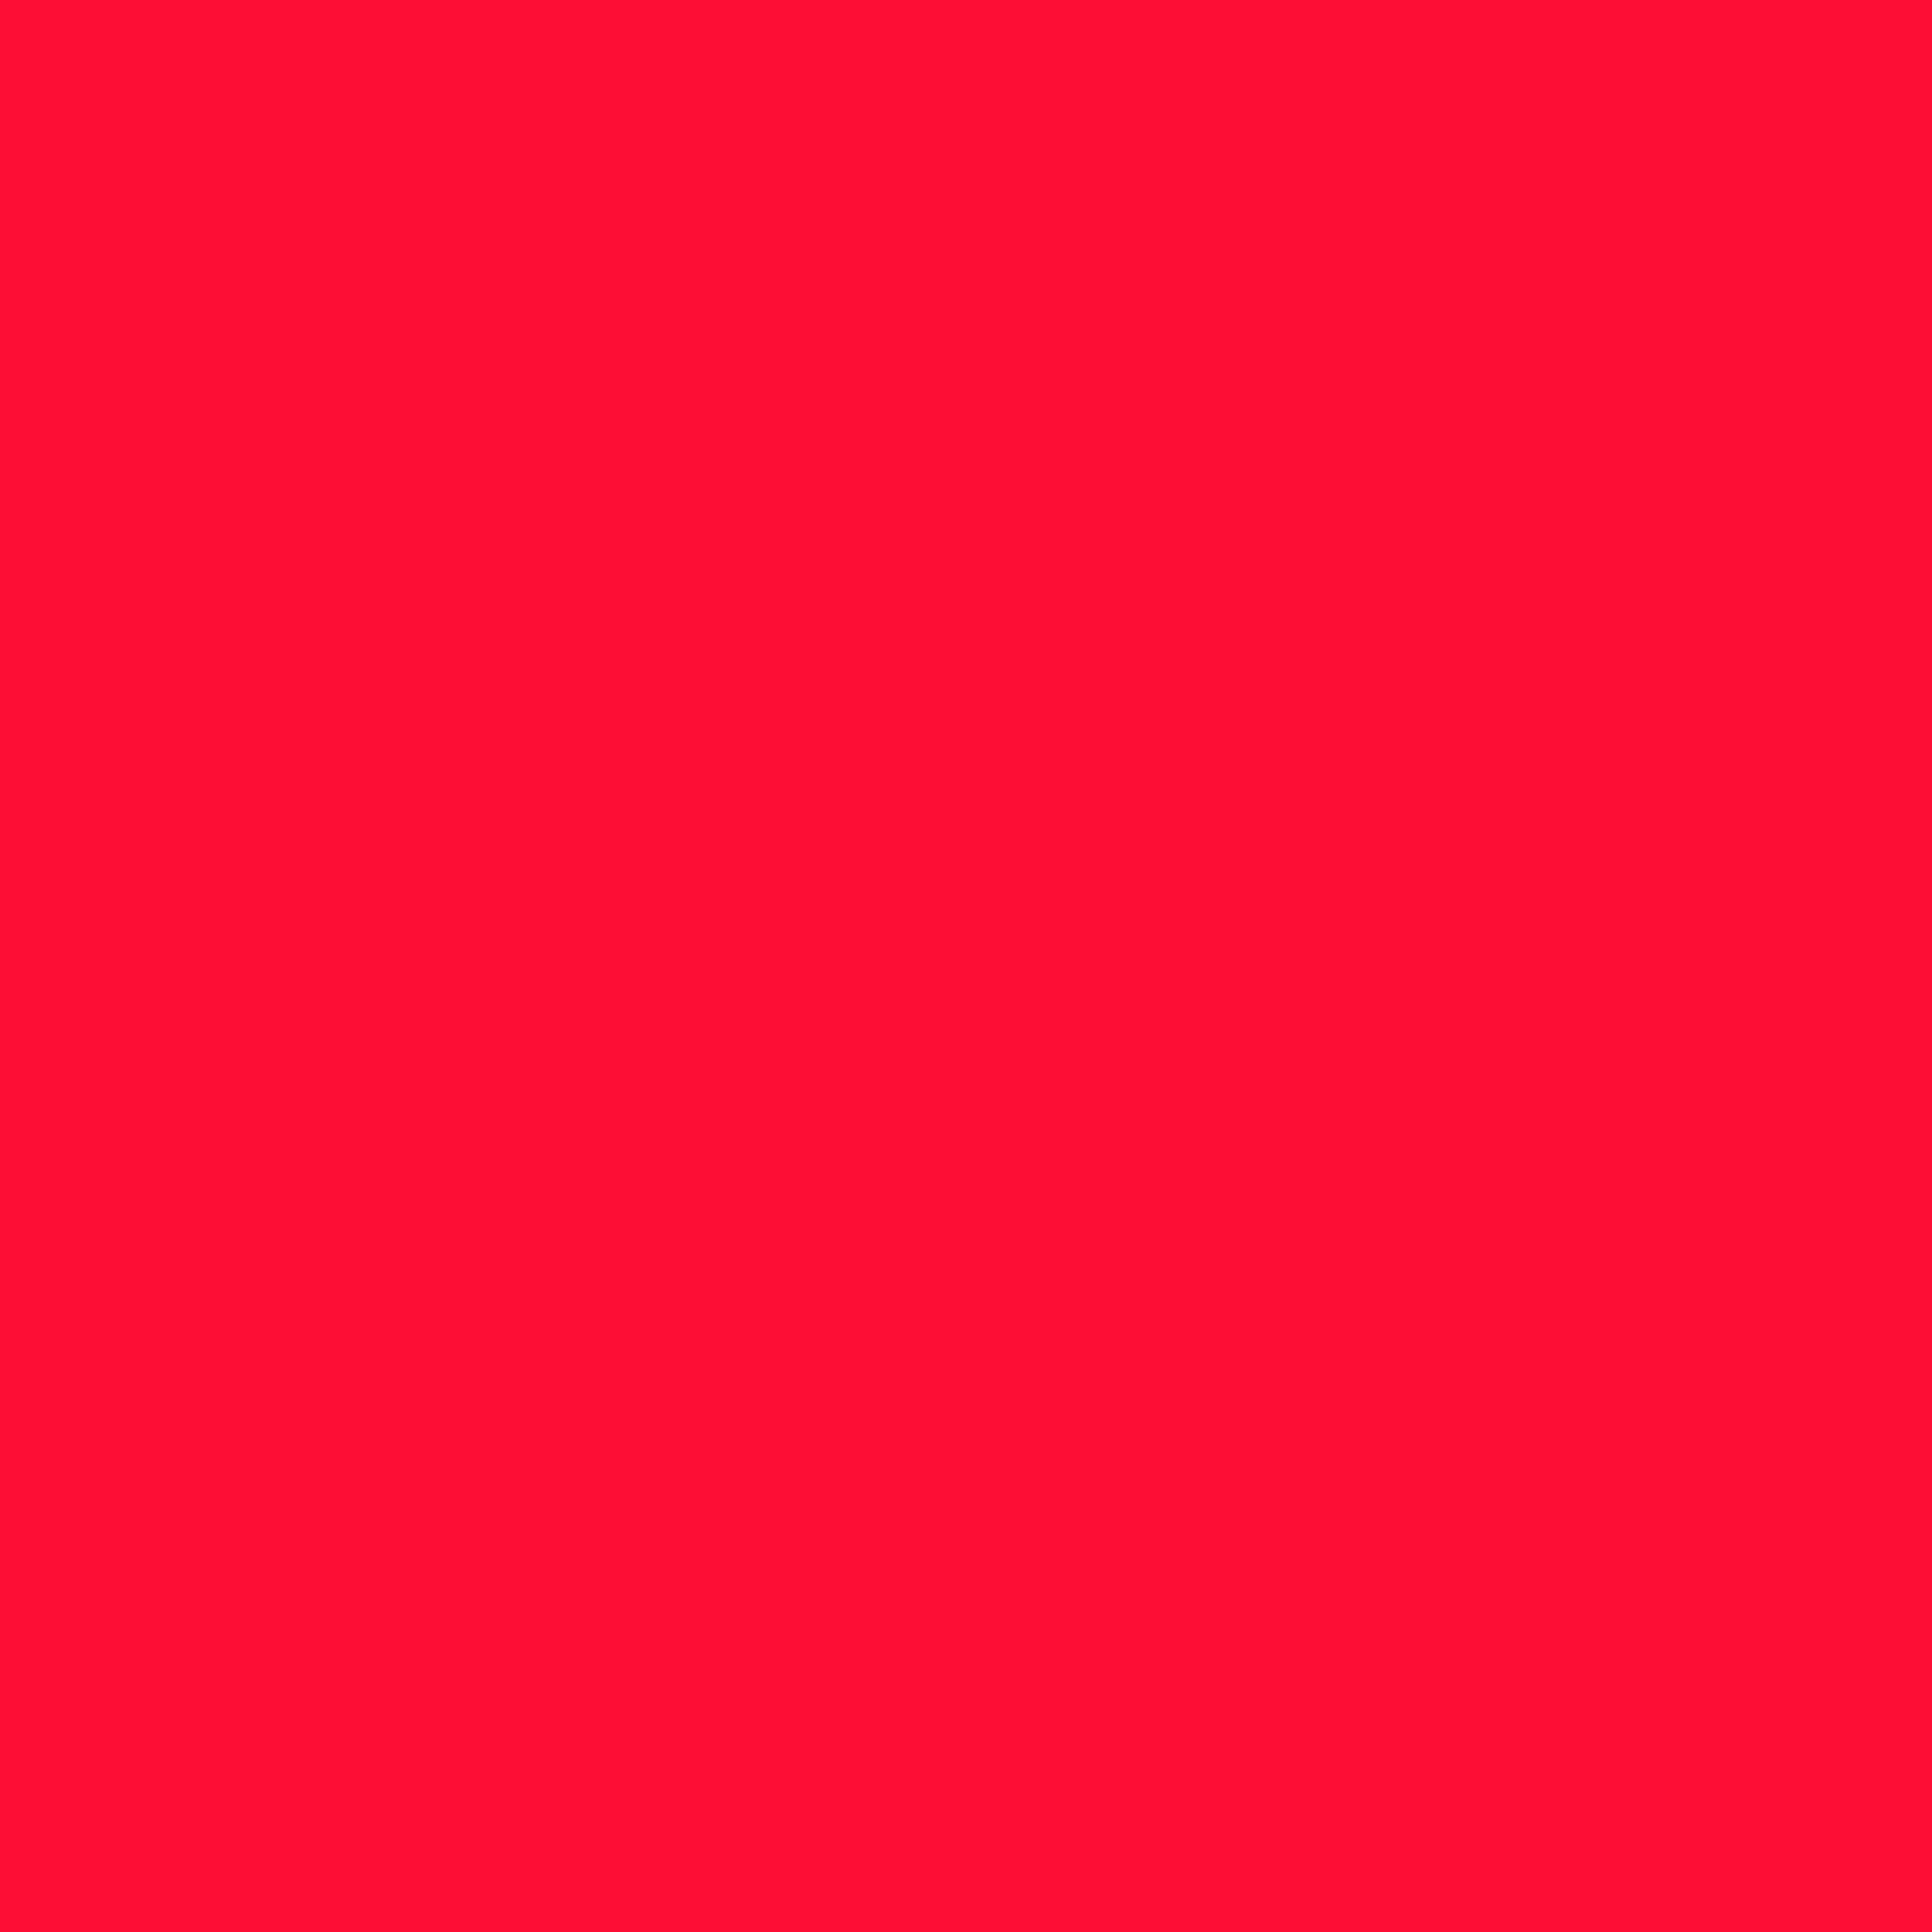 3600x3600 Tractor Red Solid Color Background